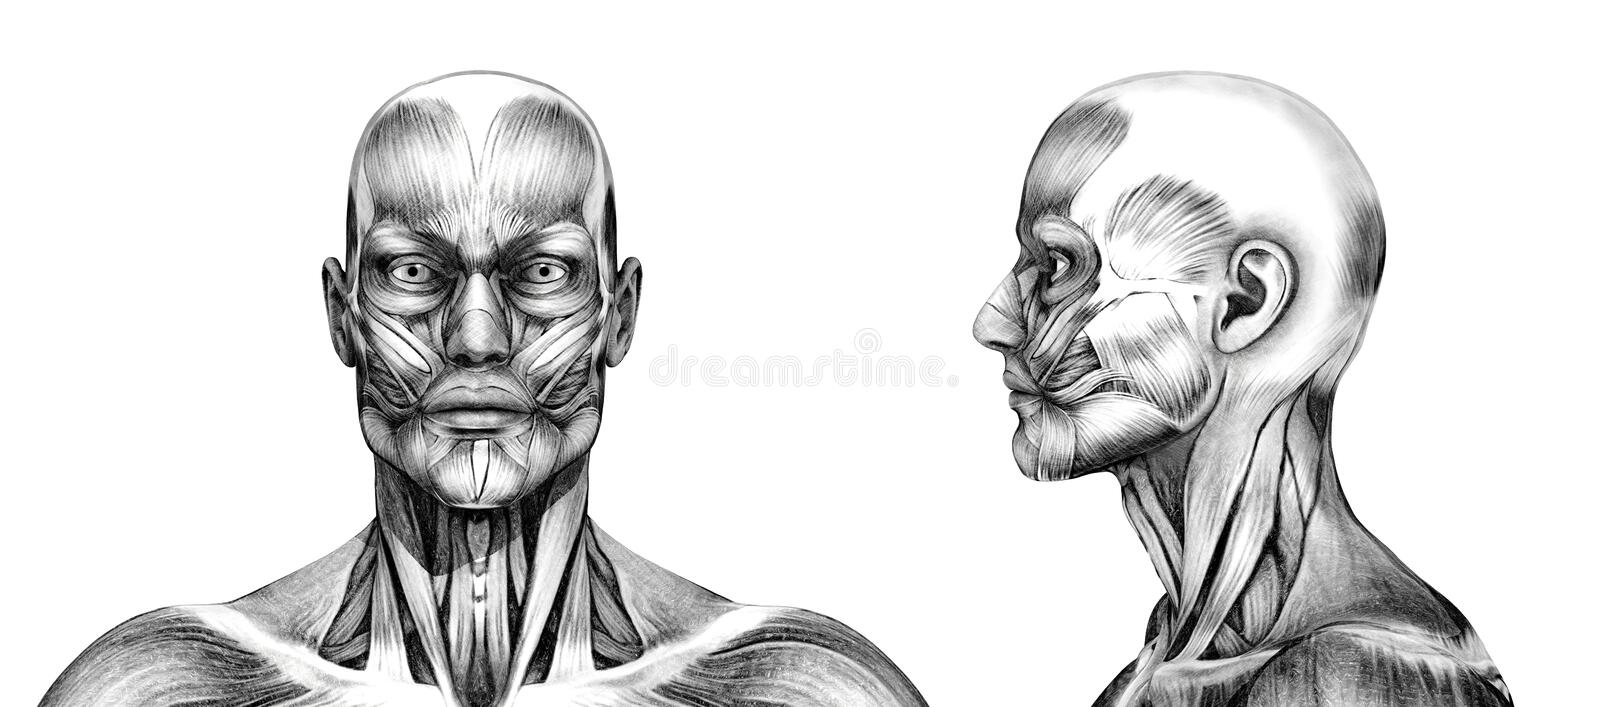 Muscles of the Head - Pencil Drawing Style stock illustration